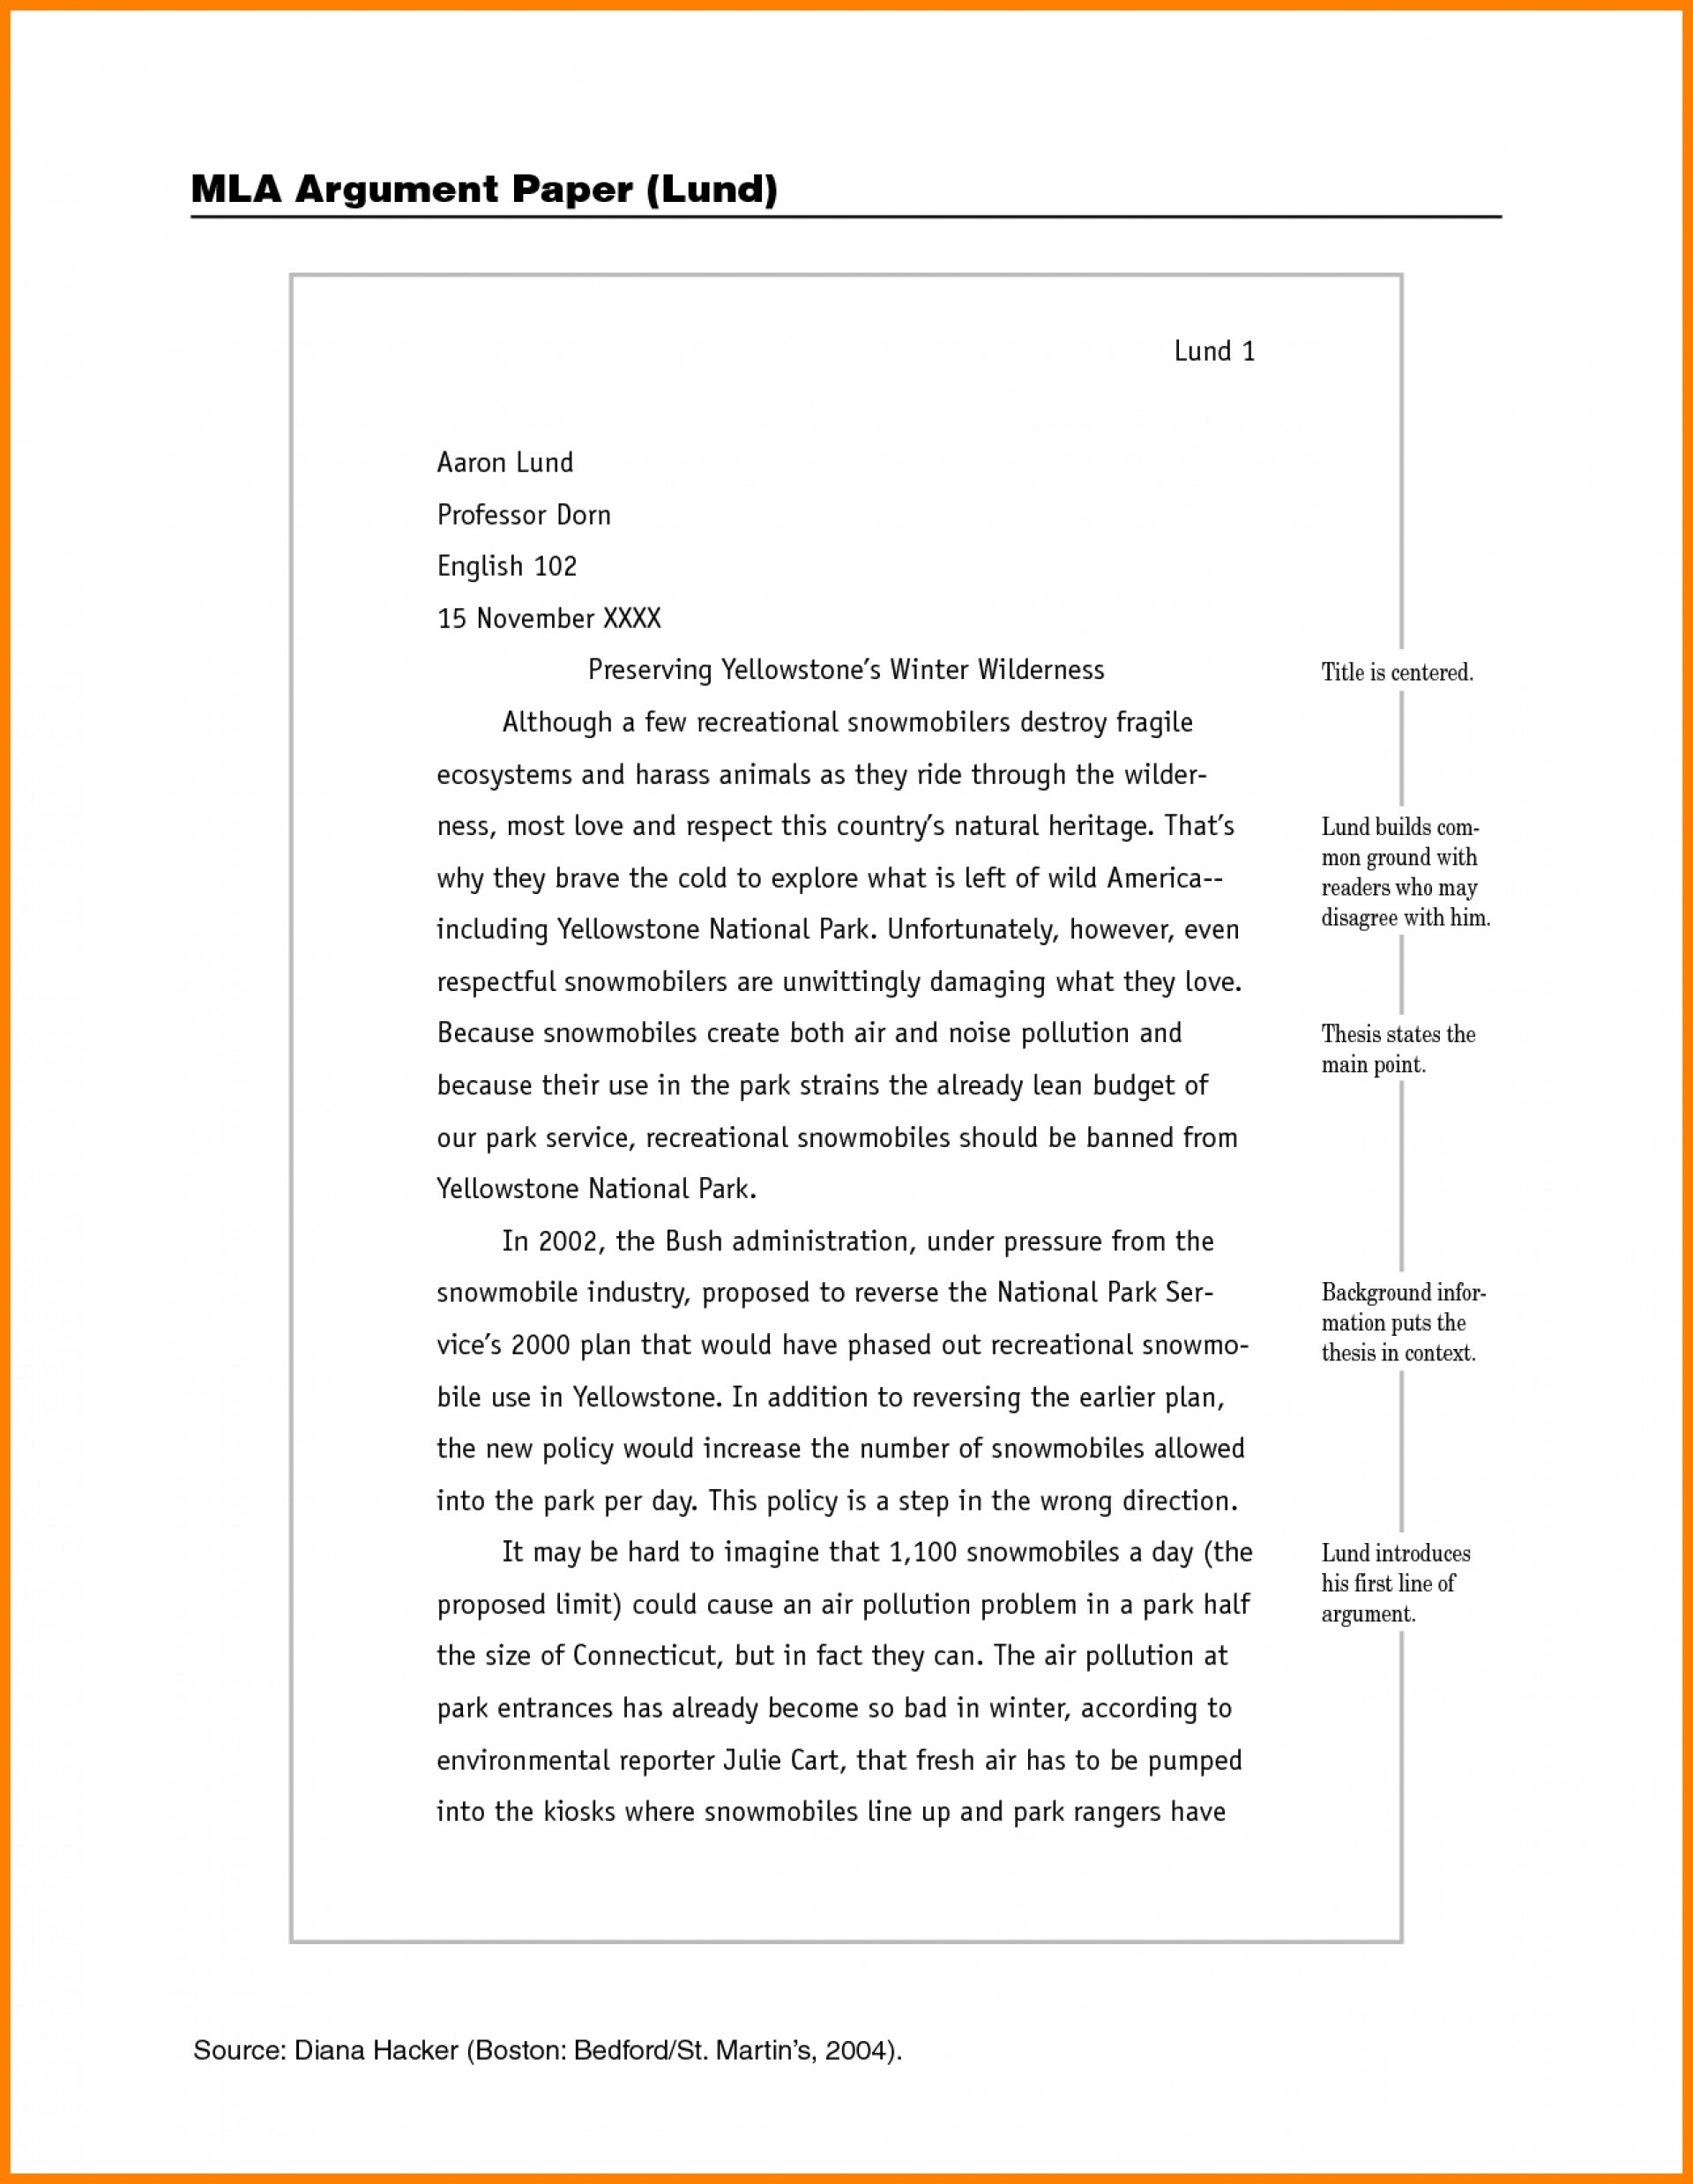 003 How To Write Research Paper Sample Mla Formatting Wondrous Instructions 1920